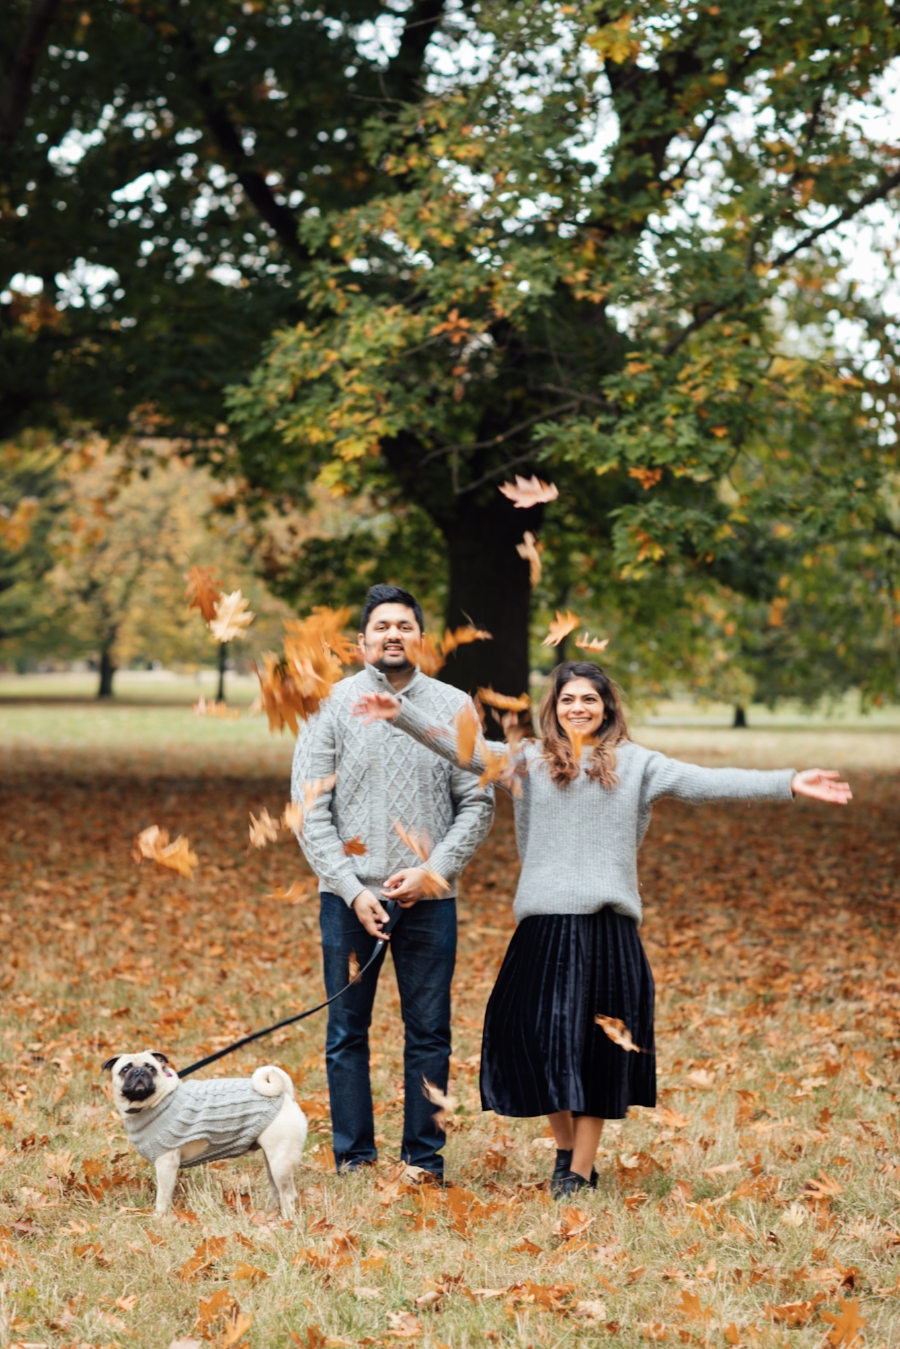 topdogblog-bestdogblog-dogblog-besttopdogbloglondon-topdogbloglondon-humanandhoundstyle-fashion-petfashion-dogfashion-coolpups-dogsinclothes-dogfashionblog-petfashionblog-ari&m-fall-fallleaves-autumn-fallwinterstyle-falltrends-family-thanksgiving-lovemyfam-familyshoot-portraitshoot-meandmypug-velvetskirt-pleatedskirt-falllooks-dapperdogs-dogsinbowtie-pugswag-pug-puglife-red-fallwinter2016